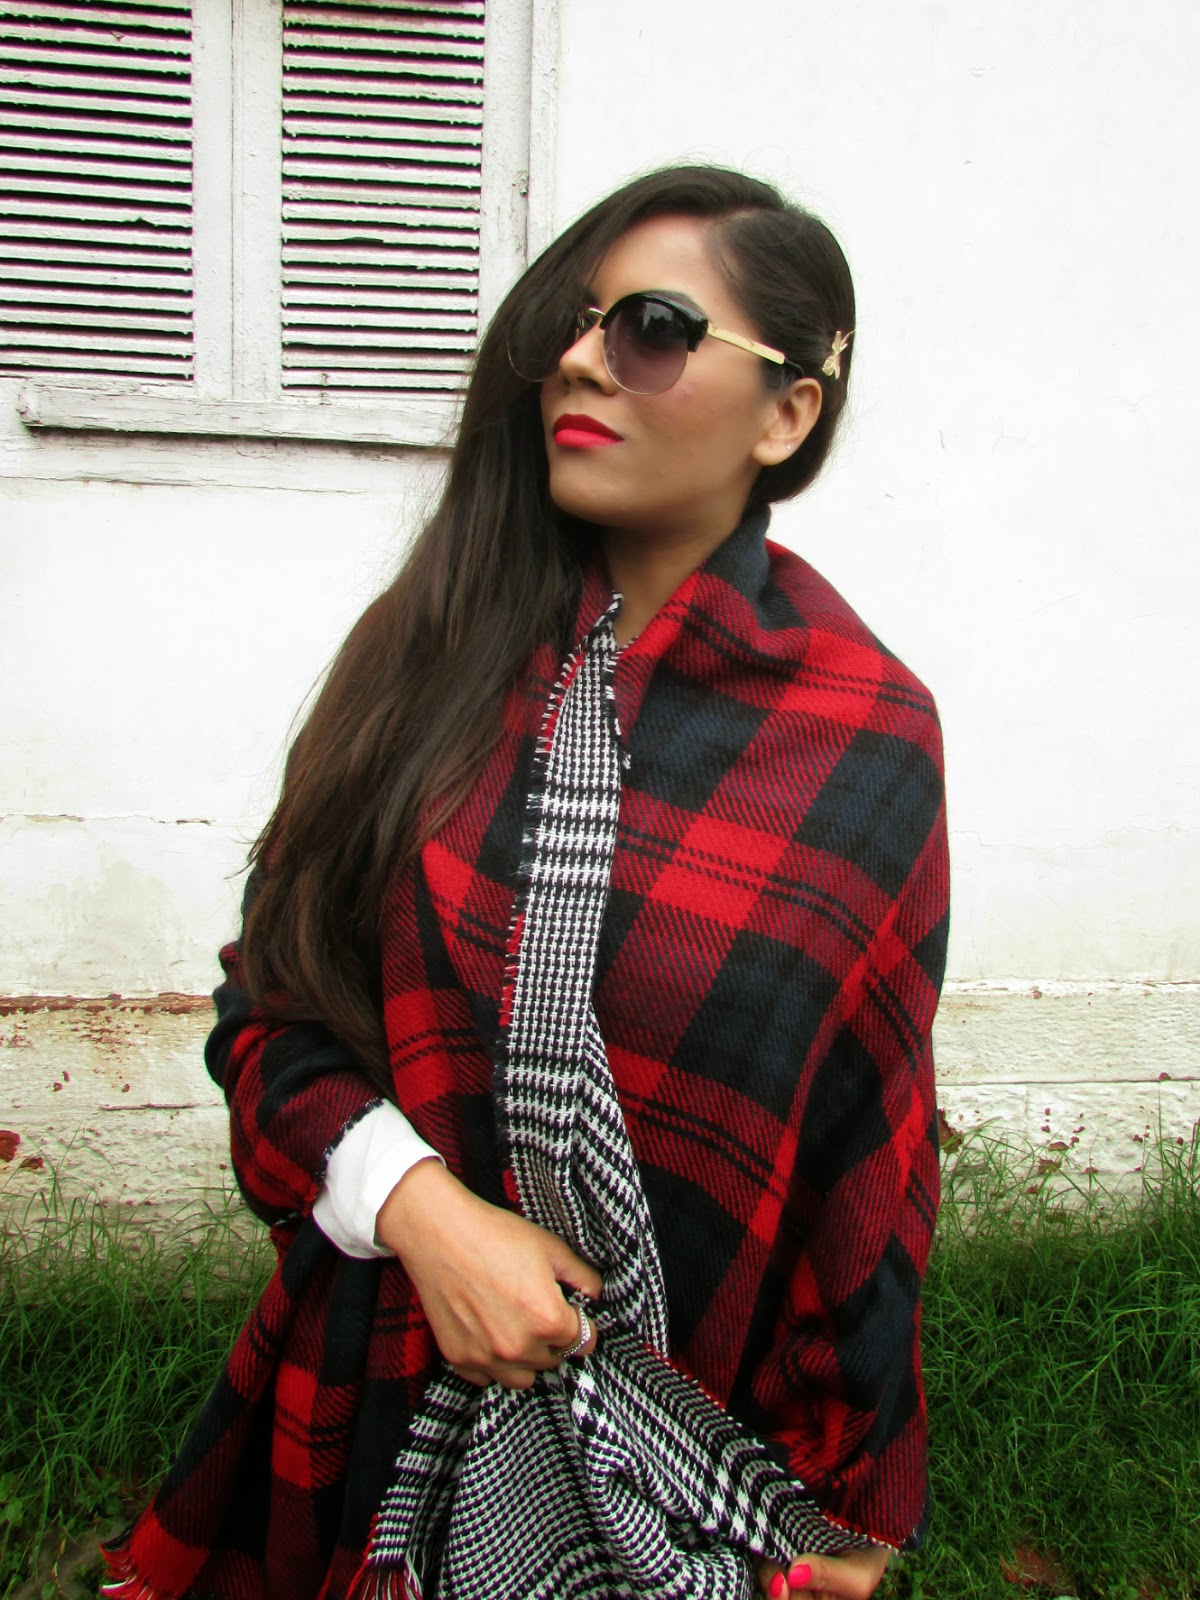 Plaid Tassel-Trim Scarf, plaid scarf, double sided plaid scarf, red plaid  scarf, black white plaid scarf, scarf cape, how to style plaid scarf, how to style cape, how to style plaid cape scarf, cheap scarf, oasap , oasap review, latest spring trends 2015, latest winter trend 2015,velvet leggings, how to style leggings, how to style velvet leggings, black velvet leggings, black leggings, fashion, winter trends 2015, black floral print leggings, Floral Detailed Skinny Leggings, cheap sunglasses india, cheap vintage sunglasses, fashion, OASAP, Sunglasses, vintage round sunglasses, vintage sunglasses,indian dahion bloggger, Statement necklace, necklace, statement necklaces, big necklace, heavy necklaces , gold necklace, silver necklace, silver statement necklace, gold statement necklace, studded statement necklace , studded necklace, stone studded necklace, stone necklace, stove studded statement necklace, stone statement necklace, stone studded gold statement necklace, stone studded silver statement necklace, black stone necklace, black stone studded statement necklace, black stone necklace, black stone statement necklace, neon statement necklace, neon stone statement necklace, black and silver necklace, black and gold necklace, blank and silver statement necklace, black and gold statement necklace, silver jewellery, gold jewellery, stove jewellery, stone studded jewellery, imitation jewellery, artificial jewellery, junk jewellery, cheap jewellery ,oasap Statement necklace, oasap necklace, oasap statement necklaces,oasap big necklace, oasap heavy necklaces , oasap gold necklace, oasap silver necklace, oasap silver statement necklace,oasap gold statement necklace, oasap studded statement necklace , oasap studded necklace, oasap stone studded necklace, oasap stone necklace, oasap stove studded statement necklace, oasap stone statement necklace, oasap stone studded gold statement necklace, oasap stone studded silver statement necklace, oasap black stone necklace, oasap black stone studded statement necklace, oasap black stone necklace, oasap black stone statement necklace, oasap neon statement necklace, oasap neon stone statement necklace, oasap black and silver necklace, oasap black and gold necklace, oasap black  and silver statement necklace, oasap black and gold statement necklace, silver jewellery, oasap gold jewellery, oasap stove jewellery, oasap stone studded jewellery, oasap imitation jewellery, oasap artificial jewellery, oasap junk jewellery, oasap cheap jewellery ,Cheap Statement necklace, Cheap necklace, Cheap statement necklaces,Cheap big necklace, Cheap heavy necklaces , Cheap gold necklace, Cheap silver necklace, Cheap silver statement necklace,Cheap gold statement necklace, Cheap studded statement necklace , Cheap studded necklace, Cheap stone studded necklace, Cheap stone necklace, Cheap stove studded statement necklace, Cheap stone statement necklace, Cheap stone studded gold statement necklace, Cheap stone studded silver statement necklace, Cheap black stone necklace, Cheap black stone studded statement necklace, Cheap black stone necklace, Cheap black stone statement necklace, Cheap neon statement necklace, Cheap neon stone statement necklace, Cheap black and silver necklace, Cheap black and gold necklace, Cheap black  and silver statement necklace, Cheap black and gold statement necklace, silver jewellery, Cheap gold jewellery, Cheap stove jewellery, Cheap stone studded jewellery, Cheap imitation jewellery, Cheap artificial jewellery, Cheap junk jewellery, Cheap cheap jewellery , Black pullover, black and grey pullover, black and white pullover, back cutout, back cutout pullover, back cutout sweater, back cutout jacket, back cutout top, back cutout tee, back cutout tee shirt, back cutout shirt, back cutout dress, back cutout trend, back cutout summer dress, back cutout spring dress, back cutout winter dress, High low pullover, High low sweater, High low jacket, High low top, High low tee, High low tee shirt, High low shirt, High low dress, High low trend, High low summer dress, High low spring dress, High low winter dress, oasap Black pullover, oasap black and grey pullover, oasap black and white pullover, oasap back cutout, oasap back cutout pullover, oasap back cutout sweater, oasap back cutout jacket, oasap back cutout top, oasap back cutout tee, oasap back cutout tee shirt, oasap back cutout shirt, oasap back cutout dress, oasap back cutout trend, oasap back cutout summer dress, oasap back cutout spring dress, oasap back cutout winter dress, oasap High low pullover, oasap High low sweater, oasap High low jacket, oasap High low top, oasap High low tee, oasap High low tee shirt, oasap High low shirt, oasap High low dress, oasap High low trend, oasap High low summer dress, oasap High low spring dress, oasap High low winter dress, Cropped, cropped tee,cropped tee shirt , cropped shirt, cropped sweater, cropped pullover, cropped cardigan, cropped top, cropped tank top, Cheap Cropped, cheap cropped tee,cheap cropped tee shirt ,cheap  cropped shirt, cheap cropped sweater, cheap cropped pullover, cheap cropped cardigan,cheap  cropped top, cheap cropped tank top, oasap Cropped, oasap cropped tee, oasap cropped tee shirt , oasap cropped shirt, oasap cropped sweater, oasap cropped pullover, oasap cropped cardigan, oasap cropped top, oasap cropped tank top, Winter Cropped, winter cropped tee, winter cropped tee shirt , winter cropped shirt, winter cropped sweater, winter cropped pullover, winter cropped cardigan, winter cropped top, winter cropped tank top,Leggings, winter leggings, warm leggings, winter warm leggings, fall leggings, fall warm leggings, tights, warm tights, winter tights, winter warm tights, fall tights, fall warm tights, oasap leggings, oasap tights, oasap warm leggings, oasap warm tights, oasap winter warm tights, oasap fall warm tights, woollen tights , woollen leggings, oasap woollen tights, oasap woollen leggings, woollen bottoms, oasap woollen bottoms, oasap woollen pants , woollen pants,  Christmas , Christmas leggings, Christmas tights, oasap Christmas, oasap Christmas clothes, clothes for Christmas , oasap Christmas leggings, oasap Christmas tights, oasap warm Christmas leggings, oasap warm Christmas  tights, oasap snowflake leggings, snowflake leggings, snowflake tights, oasap rain deer tights, oasap rain deer leggings, ugly Christmas sweater, Christmas tree, Christmas clothes, Santa clause,Wishlist, clothes wishlist, oasap wishlist, oasap, oasap.com, oasap.com wishlist, autumn wishlist,autumn oasap wishlist, autumn clothes wishlist, autumn shoes wishlist, autumn bags wishlist, autumn boots wishlist, autumn pullovers wishlist, autumn cardigans wishlist, autymn coats wishlist, persunmall clothes wishlist, oasap bags wishlist, oasap bags wishlist, oasap boots wishlist, oasap pullover wishlist, oasap cardigans wishlist, oasap autum clothes wishlist, winter clothes, wibter clothes wishlist, winter wishlist, wibter pullover wishlist, winter bags wishlist, winter boots wishlist, winter cardigans wishlist, winter leggings wishlist, oasap winter clothes, oasap autumn clothes, oasap winter collection, oasap autumn collection,Cheap clothes online,cheap dresses online, cheap jumpsuites online, cheap leggings online, cheap shoes online, cheap wedges online , cheap skirts online, cheap jewellery online, cheap jackets online, cheap jeans online, cheap maxi online, cheap makeup online, cheap cardigans online, cheap accessories online, cheap coats online,cheap brushes online,cheap tops online, chines clothes online, Chinese clothes,Chinese jewellery ,Chinese jewellery online,Chinese heels online,Chinese electronics online,Chinese garments,Chinese garments online,Chinese products,Chinese products online,Chinese accessories online,Chinese inline clothing shop,Chinese online shop,Chinese online shoes shop,Chinese online jewellery shop,Chinese cheap clothes online,Chinese  clothes shop online, korean online shop,korean garments,korean makeup,korean makeup shop,korean makeup online,korean online clothes,korean online shop,korean clothes shop online,korean dresses online,korean dresses online,cheap Chinese clothes,cheap korean clothes,cheap Chinese makeup,cheap korean makeup,cheap korean shopping ,cheap Chinese shopping,cheap Chinese online shopping,cheap korean online shopping,cheap Chinese shopping website,cheap korean shopping website, cheap online shopping,online shopping,how to shop online ,how to shop clothes online,how to shop shoes online,how to shop jewellery online,how to shop mens clothes online, mens shopping online,boys shopping online,boys jewellery online,mens online shopping,mens online shopping website,best Chinese shopping website, Chinese online shopping website for men,best online shopping website for women,best korean online shopping,best korean online shopping website,korean fashion,korean fashion for women,korean fashion for men,korean fashion for girls,korean fashion for boys,best chinese online shopping,best chinese shopping website,best chinese online shopping website,wholesale chinese shopping website,wholesale shopping website,chinese wholesale shopping online,chinese wholesale shopping, chinese online shopping on wholesale prices, clothes on wholesale prices,cholthes on wholesake prices,clothes online on wholesales prices,online shopping, online clothes shopping, online jewelry shopping,how to shop online, how to shop clothes online, how to shop earrings online, how to shop,skirts online, dresses online,jeans online, shorts online, tops online, blouses online,shop tops online, shop blouses online, shop skirts online, shop dresses online, shop botoms online, shop summer dresses online, shop bracelets online, shop earrings online, shop necklace online, shop rings online, shop highy low skirts online, shop sexy dresses onle, men's clothes online, men's shirts online,men's jeans online, mens.s jackets online, mens sweaters online, mens clothes, winter coats online, sweaters online, cardigens online,beauty , fashion,beauty and fashion,beauty blog, fashion blog , indian beauty blog,indian fashion blog, beauty and fashion blog, indian beauty and fashion blog, indian bloggers, indian beauty bloggers, indian fashion bloggers,indian bloggers online, top 10 indian bloggers, top indian bloggers,top 10 fashion bloggers, indian bloggers on blogspot,home remedies, how to,oasap online shopping,oasap online shopping review,oasap.com review,oasap online clothing store,oasap online chinese store,oasap online shopping,oasap site review,oasap.com site review, oasap Chines fashion, persunmall , oasap.com, oasap clothing, oasap dresses, oasap shoes, oasap accessories,oasap men cloths ,oasap makeup, oasap helth products,oasap Chinese online shopping, oasap Chinese store, oasap online chinese shopping, oasap lchinese shopping online,oasap, oasap dresses, oasap clothes, oasap garments, oasap clothes, oasap skirts, oasap pants, oasap tops, oasap cardigans, oasap leggings, oasap fashion , oasap clothes fashion, oasap footwear, oasap fashion footwear, oasap jewellery, oasap fashion jewellery, oasap rings, oasap necklace, oasap bracelets, oasap earings,Autumn, fashion, oasap, wishlist,Winter,fall, fall abd winter, winter clothes , fall clothes, fall and winter clothes, fall jacket, winter jacket, fall and winter jacket, fall blazer, winter blazer, fall and winter blazer, fall coat , winter coat, falland winter coat, fall coverup, winter coverup, fall and winter coverup, outerwear, coat , jacket, blazer, fall outerwear, winter outerwear, fall and winter outerwear, woolen clothes, wollen coat, woolen blazer, woolen jacket, woolen outerwear, warm outerwear, warm jacket, warm coat, warm blazer, warm sweater, coat , white coat, white blazer, white coat, white woolen blazer, white coverup, white woolens,oasap online shopping review,oasap.com review,oasap online clothing store,oasap online chinese store,oasap online shopping,oasap site review,oasap.com site review, oasap Chines fashion, oasap , oasap.com, oasap clothing, oasap dresses, oasap shoes, oasap accessories,oasap men cloths ,oasap makeup, oasap helth products,oasap Chinese online shopping, oasap Chinese store, oasap online chinese shopping, oasap chinese shopping online,oasap, oasap dresses, oasap clothes, oasap garments, oasap clothes, oasap skirts, persunmall pants, oasap tops, oasap cardigans, oasap leggings, oasap fashion , oasap clothes fashion, oasap footwear, oasap fashion footwear, oasap jewellery, oasap fashion jewellery, oasap rings, oasap necklace, oasap bracelets, oasap earings,latest fashion trends online, online shopping, online shopping in india, online shopping in india from america, best online shopping store , best fashion clothing store, best online fashion clothing store, best online jewellery store, best online footwear store, best online store, beat online store for clothes, best online store for footwear, best online store for jewellery, best online store for dresses, worldwide shipping free, free shipping worldwide, online store with free shipping worldwide,best online store with worldwide shipping free,low shipping cost, low shipping cost for shipping to india, low shipping cost for shipping to asia, low shipping cost for shipping to korea,Friendship day , friendship's day, happy friendship's day, friendship day outfit, friendship's day outfit, how to wear floral shorts, floral shorts, styling floral shorts, how to style floral shorts, how to wear shorts, how to style shorts, how to style style denim shorts, how to wear denim shorts,how to wear printed shorts, how to style printed shorts, printed shorts, denim shorts, how to style black shorts, how to wear black shorts, how to wear black shorts with black T-shirts, how to wear black T-shirt, how to style a black T-shirt, how to wear a plain black T-shirt, how to style black T-shirt,how to wear shorts and T-shirt, what to wear with floral shorts, what to wear with black floral shorts,how to wear all black outfit, what to wear on friendship day, what to wear on a date, what to wear on a lunch date, what to wear on lunch, what to wear to a friends house, what to wear on a friends get together, what to wear on friends coffee date , what to wear for coffee,beauty,Pink, pink pullover, pink sweater, pink jumpsuit, pink sweatshirt, neon pink, neon pink sweater, neon pink pullover, neon pink jumpsuit , neon pink cardigan, cardigan , pink cardigan, sweater, jumper, jumpsuit, pink jumper, neon pink jumper, pink jacket, neon pink jacket, winter clothes, oversized coat, oversized winter clothes, oversized pink coat, oversized coat, oversized jacket, oasap pink, oasap pink sweater, oasap pink jacket, oasap pink cardigan, oasap pink coat, oasap pink jumper, oasap neon pink, oasap neon pink jacket, oasap neon pink coat, oasap neon pink sweater, oasap neon pink jumper, oasap neon pink pullover, pink pullover, neon pink pullover,fur,furcoat,furjacket,furblazer,fur pullover,fur cardigan,front open fur coat,front open fur jacket,front open fur blazer,front open fur pullover,front open fur cardigan,real fur, real fur coat,real fur jacket,real fur blazer,real fur pullover,real fur cardigan, soft fur,soft fur coat,soft fur jacket,soft furblazer,soft fur pullover,sof fur cardigan, white fur,white fur coat,white fur jacket,white fur blazer, white fur pullover, white fur cardigan,trench, trench coat, trench coat online, trench coat india, trench coat online India, trench cost price, trench coat price online, trench coat online price, cheap trench coat, cheap trench coat online, cheap trench coat india, cheap trench coat online India, cheap trench coat , Chinese trench coat, Chinese coat, cheap Chinese trench coat, Korean coat, Korean trench coat, British coat, British trench coat, British trench coat online, British trench coat online, New York trench coat, New York trench coat online, cheap new your trench coat, American trench coat, American trench coat online, cheap American trench coat, low price trench coat, low price trench coat online , low price trench coat online india, low price trench coat india, oasap trench, oasap trench coat, oasap trench coat online, oasap trench coat india, oasap trench coat online India, oasap trench cost price,oasap trench coat price online, oasap trench coat online price, oasap cheap trench coat, oasap cheap trench coat online, oasap cheap trench coat india, oasap cheap trench coat online India, oasap cheap trench coat , oasap Chinese trench coat, oasap Chinese coat, oasap cheap Chinese trench coat, oasap Korean coat, oasap Korean trench coat, oasap British coat, oasap British trench coat, oasap British trench coat online, oasap British trench coat online, oasap New York trench coat, oasap New York trench coat online, oasap cheap new your trench coat, oasap American trench coat, oasap American trench coat online, oasap cheap American trench coat, oasap low price trench coat, oasap low price trench coat online , oasap low price trench coat online india, oasap low price trench coat india, how to wear trench coat, how to wear trench, how to style trench coat, how to style coats, how to style long coats, how to style winter coats, how to style winter trench coats, how to style winter long coats, how to style warm coats, how to style beige coat, how to style beige long coat, how to style beige trench coat, how to style beige coat, beige coat, beige long coat, beige long coat, beige frock coat, beige double breasted coat, double breasted coat, how to style frock coat, how to style double breasted coat, how to wear beige trench coat,how to wear beige coat, how to wear beige long coat, how to wear beige frock coat, how to wear beige double button coat, how to wear beige double breat coat, double button coat, what us trench coat, uses of trench coat, what is frock coat, uses of frock coat, what is long coat, uses of long coat, what is double breat coat, uses of double breasted coat, what is bouton up coat, uses of button up coat, what is double button coat, uses of double button coat, velvet leggings, velvet tights, velvet bottoms, embroided velvet leggings, embroided velvet tights, pattern tights, velvet pattern tights, floral tights , floral velvet tights, velvet floral tights, embroided  velvet leggings, pattern leggings , velvet pattern leggings , floral leggings , floral velvet leggings, velvet floral leggings ,oasap velvet leggings, oasap velvet tights, oasap velvet bottoms,oasap embroided velvet leggings,oasap embroided velvet tights, oasap pattern tights, oasap velvet pattern tights, oasap floral tights , oasap floral velvet tights, oasap velvet floral tights, oasap embroided  velvet leggings, oasap pattern leggings , oasap velvet pattern leggings , oasap floral leggings ,oasap floral velvet leggings, oasap velvet floral leggings ,statement necklace, stone statement necklace, multi colored necklace, zahara jani jewelry, cheap jewelry online, fashion, fashion jewelry india, cheap statement necklace online , how to style statement necklace, how to match jewelry,Statement necklace, necklace, statement necklaces, big necklace, heavy necklaces , gold necklace, silver necklace, silver statement necklace, gold statement necklace, studded statement necklace , studded necklace, stone studded necklace, stone necklace, stove studded statement necklace, stone statement necklace, stone studded gold statement necklace, stone studded silver statement necklace, black stone necklace, black stone studded statement necklace, black stone necklace, black stone statement necklace, neon statement necklace, neon stone statement necklace, black and silver necklace, black and gold necklace, blank and silver statement necklace, black and gold statement necklace, silver jewellery, gold jewellery, stove jewellery, stone studded jewellery, imitation jewellery, artificial jewellery, junk jewellery, cheap jewellery , zahrajani Statement necklace, zahrajani necklace, zahrajani statement necklaces,zahrajani big necklace, zahrajani heavy necklaces , zahrajani gold necklace, zahrajani silver necklace, zahrajani silver statement necklace,zahrajani gold statement necklace, zahrajani studded statement necklace , zahrajani studded necklace, zahrajani stone studded necklace, zahrajani stone necklace, zahrajani stove studded statement necklace, zahrajani stone statement necklace, zahrajani stone studded gold statement necklace, zahrajani stone studded silver statement necklace, zahrajani black stone necklace, zahrajani black stone studded statement necklace, zahrajani black stone necklace, zahrajani black stone statement necklace, zahrajani neon statement necklace, zahrajani neon stone statement necklace, zahrajani black and silver necklace, zahrajani black and gold necklace, zahrajani black  and silver statement necklace, zahrajani black and gold statement necklace, silver jewellery, zahrajani gold jewellery, zahrajani stove jewellery, zahrajani stone studded jewellery, zahrajani imitation jewellery, zahrajani artificial jewellery, zahrajani junk jewellery, vcheap jewellery ,Cheap Statement necklace, Cheap necklace, Cheap statement necklaces,Cheap big necklace, Cheap heavy necklaces , Cheap gold necklace, Cheap silver necklace, Cheap silver statement necklace,Cheap gold statement necklace, Cheap studded statement necklace , Cheap studded necklace, Cheap stone studded necklace, Cheap stone necklace, Cheap stove studded statement necklace, Cheap stone statement necklace, Cheap stone studded gold statement necklace, Cheap stone studded silver statement necklace, Cheap black stone necklace, Cheap black stone studded statement necklace, Cheap black stone necklace, Cheap black stone statement necklace, Cheap neon statement necklace, Cheap neon stone statement necklace, Cheap black and silver necklace, Cheap black and gold necklace, Cheap black  and silver statement necklace, Cheap black and gold statement necklace, silver jewellery, Cheap gold jewellery, Cheap stove jewellery, Cheap stone studded jewellery, Cheap imitation jewellery, Cheap artificial jewellery, Cheap junk jewellery, Cheap cheap jewellery ,Giveaway, giveaways,clothes giveaway, clothes giveaways, shoes giveaways, jewellery giveaway, jewellery giveaways, online clothes giveaway, online shoes giveaway, online jewellery giveaway, , clothes and shoes giveaway , clothes and jewellery giveaway, jewellery and shoes giveaway, online shoes and clothes giveaway,online jewellery and clothes giveaway, free clothes , free shoes, free jewellery, free clothes and shoes, free clothes and jewellery, free shoes and jewellery giveaway,Black sunglasses, black sunnies, mirrored sunnies, mirrored sunglasses, sunglasses, sunnies, how to wear sunnies, how to wear sunglasses, how to wear mirrored sunglasses, how to wear mirrored sunnies, how to wear sunglasses in winter, how to wear sunglasses at night, how to wear sunnies at night, how to wear sunnies in winter, best sunglasses, best sunnies, best mirrored sunnies, best mirrored sunglasses, best sunglasses online, best sunnies online, best mirrored sunnies online, best mirrored sunglasses online, cheap mirrored sunglasses, cheap mirrored sunnies, cheap mirrored sunglasses online, cheap mirrored sunnies online, cost of mirrored sunnies, cost of mirrored sunglasses, cost of mirrored sunglasses online, cost of mirrored sunnies online, black sunglasses by zahrajani , black sunnies by zahrajani , zahrajani sunglasses, cost of sunglasses by zahrajani , cheap sunglasses at zahrajani , cheap sunnies at zahrajani , cost of sunglasses of zahrajani , cost of sunnies at zahrajani , mirrored sunnies at Choies, mirrored sunglasses at zahrajani , cheap mirrored sunglasses at zahrajani , cheap mirrored sunnies at choirs, cost of mirrored sunglasses at Choies, cost of mirrored sunnies at zahrajani ,Chinese jewellery ,Chinese jewellery online,Chinese heels online,Chinese electronics online,Chinese garments,Chinese garments online,Chinese products,Chinese products online,Chinese accessories online,Chinese inline clothing shop,Chinese online shop,Chinese online shoes shop,Chinese online jewellery shop,Chinese cheap clothes online,Chinese  clothes shop online, korean online shop,korean garments,korean makeup,korean makeup shop,korean makeup online,korean online clothes,korean online shop,korean clothes shop online,korean dresses online,korean dresses online,cheap Chinese clothes,cheap korean clothes,cheap Chinese makeup,cheap korean makeup,cheap korean shopping ,cheap Chinese shopping,cheap Chinese online shopping,cheap korean online shopping,cheap Chinese shopping website,cheap korean shopping website, cheap online shopping,online shopping,how to shop online ,how to shop clothes online,how to shop shoes online,how to shop jewellery online,how to shop mens clothes online, mens shopping online,boys shopping online,boys jewellery online,mens online shopping,mens online shopping website,best Chinese shopping website, Chinese online shopping website for men,best online shopping website for women,best korean online shopping,best korean online shopping website,korean fashion,korean fashion for women,korean fashion for men,korean fashion for girls,korean fashion for boys,wholesale chinese shopping website,wholesale shopping website,chinese wholesale shopping online,chinese wholesale shopping, chinese online shopping on wholesale prices, clothes on wholesale prices,cholthes on wholesake prices,clothes online on wholesales prices,online shopping, online clothes shopping, online jewelry shopping,how to shop online, how to shop clothes online, how to shop earrings online, how to shop,skirts online, dresses online,jeans online, shorts online, tops online, blouses online,shop tops online, shop blouses online, shop skirts online, shop dresses online, shop botoms online, shop summer dresses online, shop bracelets online, shop earrings online, shop necklace online, shop rings online, shop highy low skirts online, shop sexy dresses onle, men's clothes online, men's shirts online,men's jeans online, mens.s jackets online, mens sweaters online, mens clothes, winter coats online, sweaters online, cardigens online,beauty , fashion,beauty and fashion,beauty blog, fashion blog , indian beauty blog,indian fashion blog, beauty and fashion blog, indian beauty and fashion blog, indian bloggers, indian beauty bloggers, indian fashion bloggers,indian bloggers online, top 10 indian bloggers, top indian bloggers,top 10 fashion bloggers, indian bloggers on blogspot,home remedies, how to,Winter,fall, fall abd winter, winter clothes , fall clothes, fall and winter clothes, fall jacket, winter jacket, fall and winter jacket, fall blazer, winter blazer, fall and winter blazer, fall coat , winter coat, falland winter coat, fall coverup, winter coverup, fall and winter coverup, outerwear, coat , jacket, blazer, fall outerwear, winter outerwear, fall and winter outerwear, woolen clothes, wollen coat, woolen blazer, woolen jacket, woolen outerwear, warm outerwear, warm jacket, warm coat, warm blazer, warm sweater, coat , white coat, white blazer, white coat, white woolen blazer,choies online shopping review,choies.com review,choies online clothing store,choies online chinese store,choies online shopping,choies site review,choies.com site review, choies Chines fashion, choies , choies com, choies clothing, choies dresses, choies shoes, choies accessories,choiesmen cloths ,choies makeup, choies helth products,choies Chinese online shopping, choies Chinese store, choies online chinese shopping, choies hinese shopping online,choies, choies dresses, zahrajani clothes, choies garments, choies clothes, choies skirts, choies pants, choies tops, choies cardigans, choies leggings, choies fashion , choies clothes fashion, choies footwear, choies fashion footwear, choies jewellery, choies fashion jewellery, choies rings, choies necklace, choies bracelets, choies earings,Autumn, fashion,choies